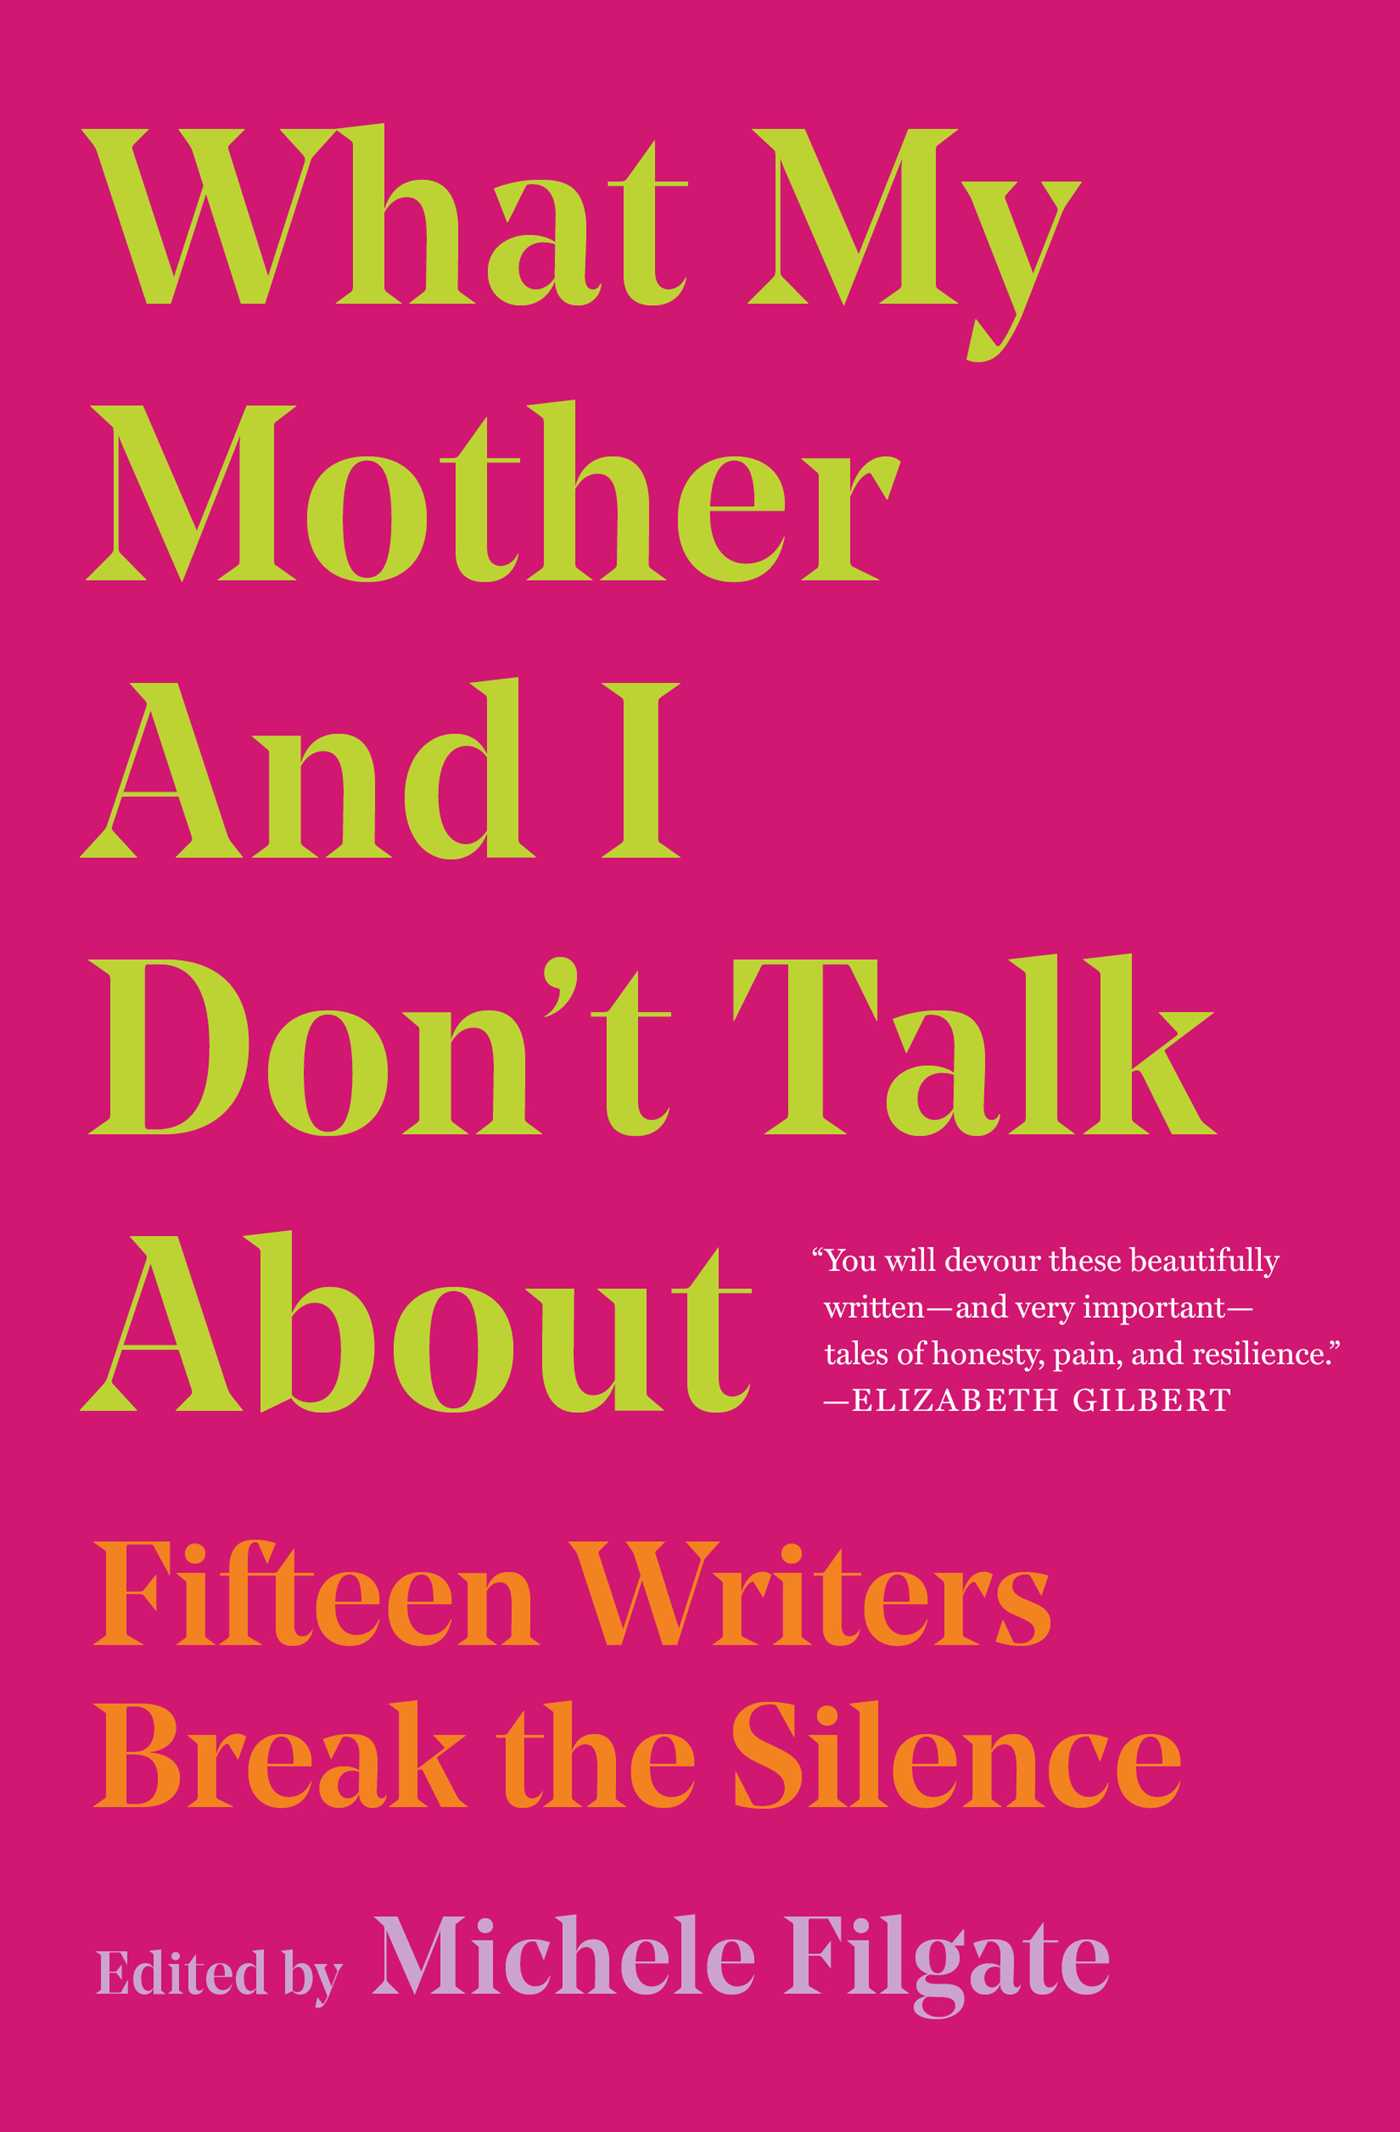 What My Mother and I Don't Talk About Fifteen Writers Break the Silence